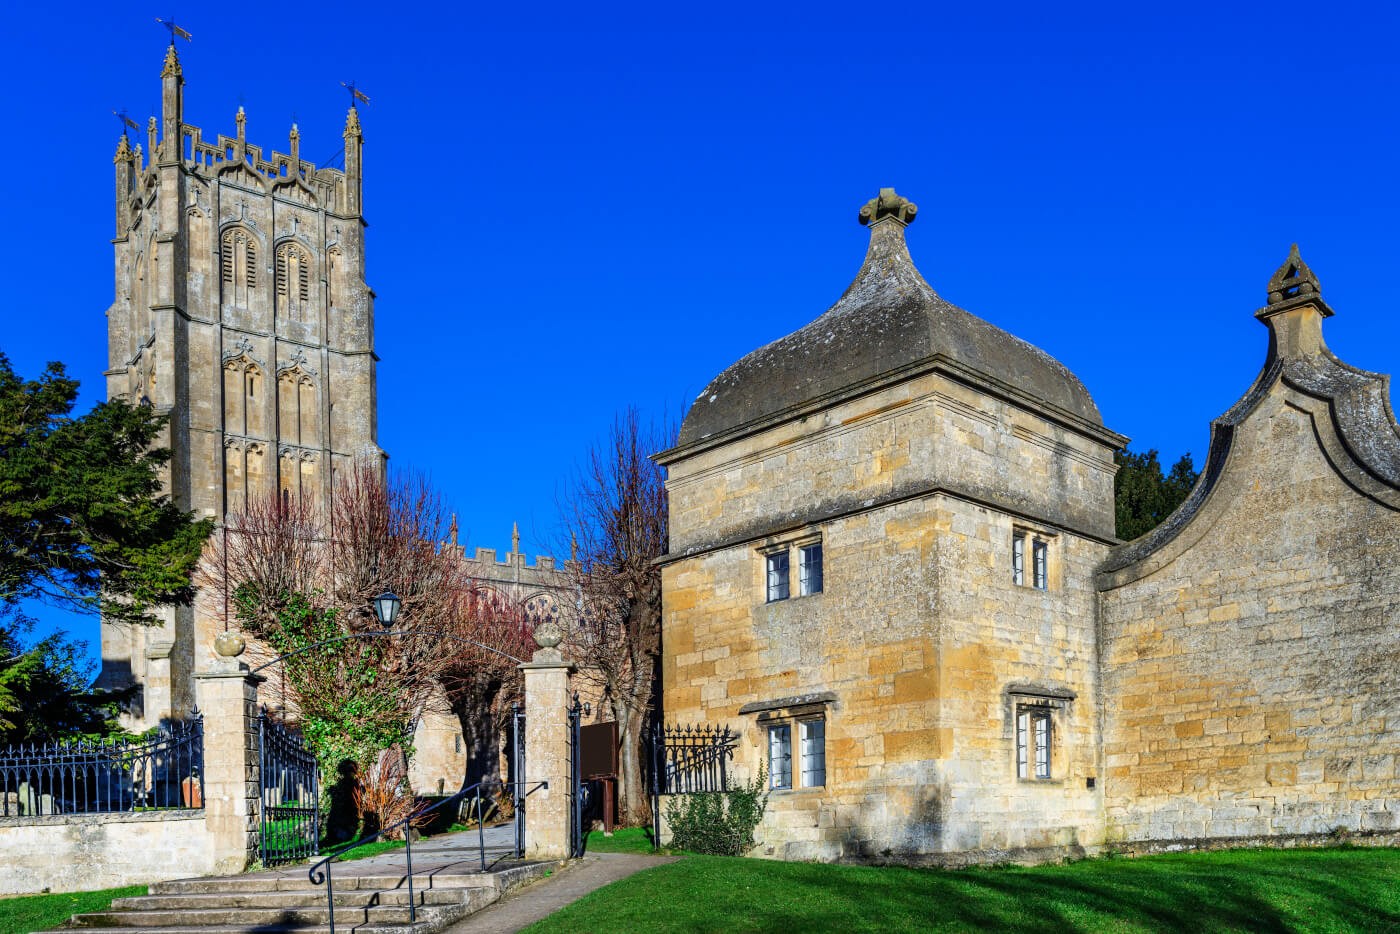 An image of the exterior of the Chipping Campden Wool Church